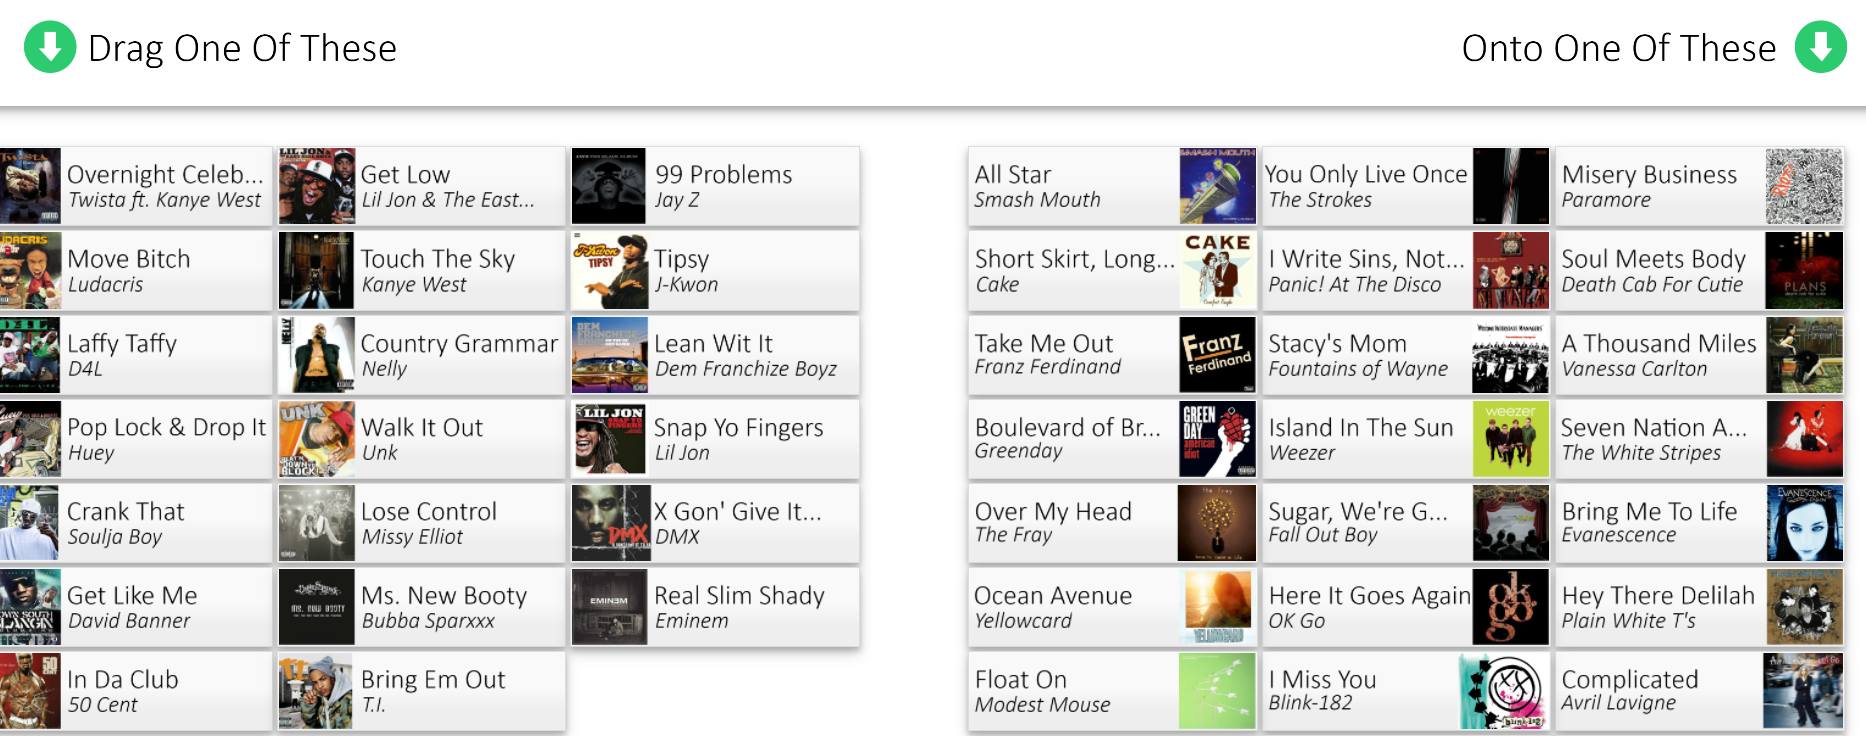 The Magic iPod website lets you mash-up songs that shouldn't